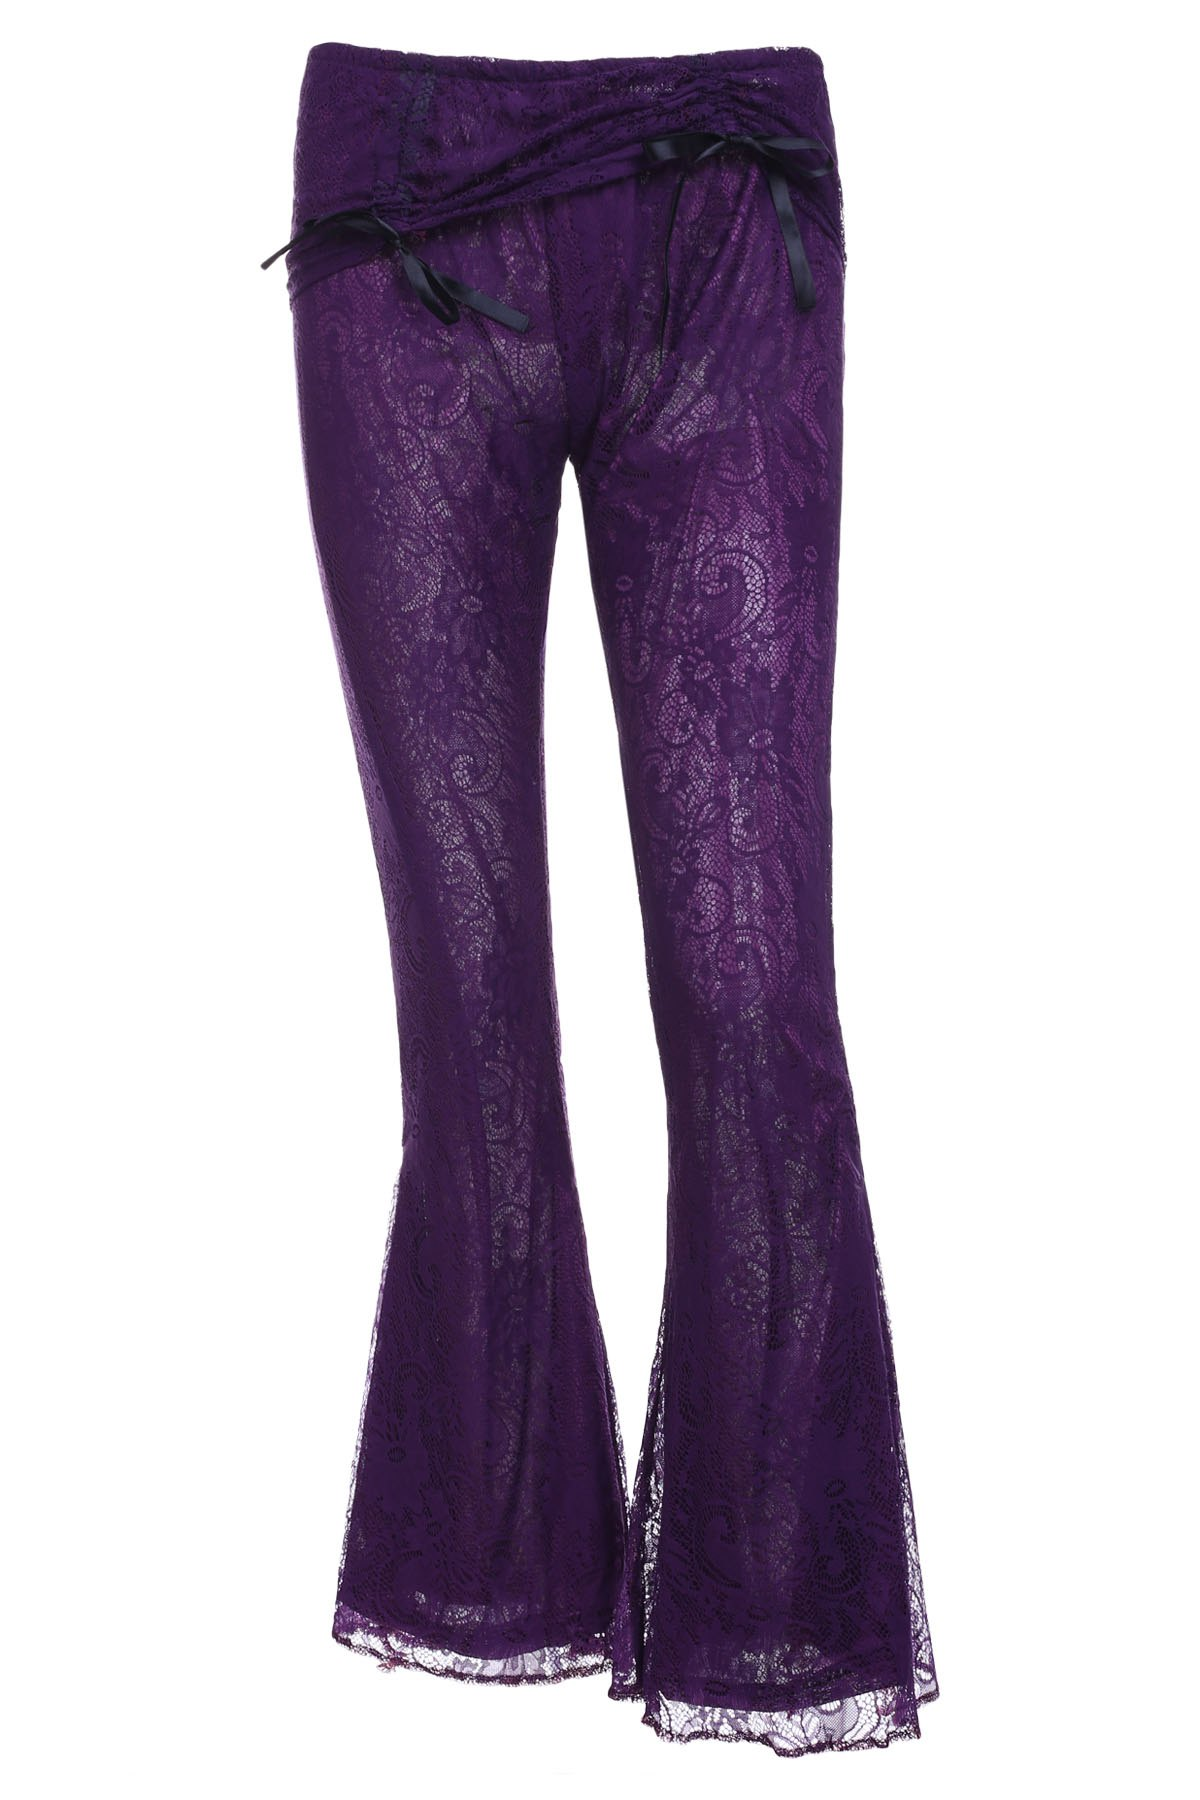 Stylish Elastic Waist Solid Color Boot Cut Women's Lace Pants - PURPLE S